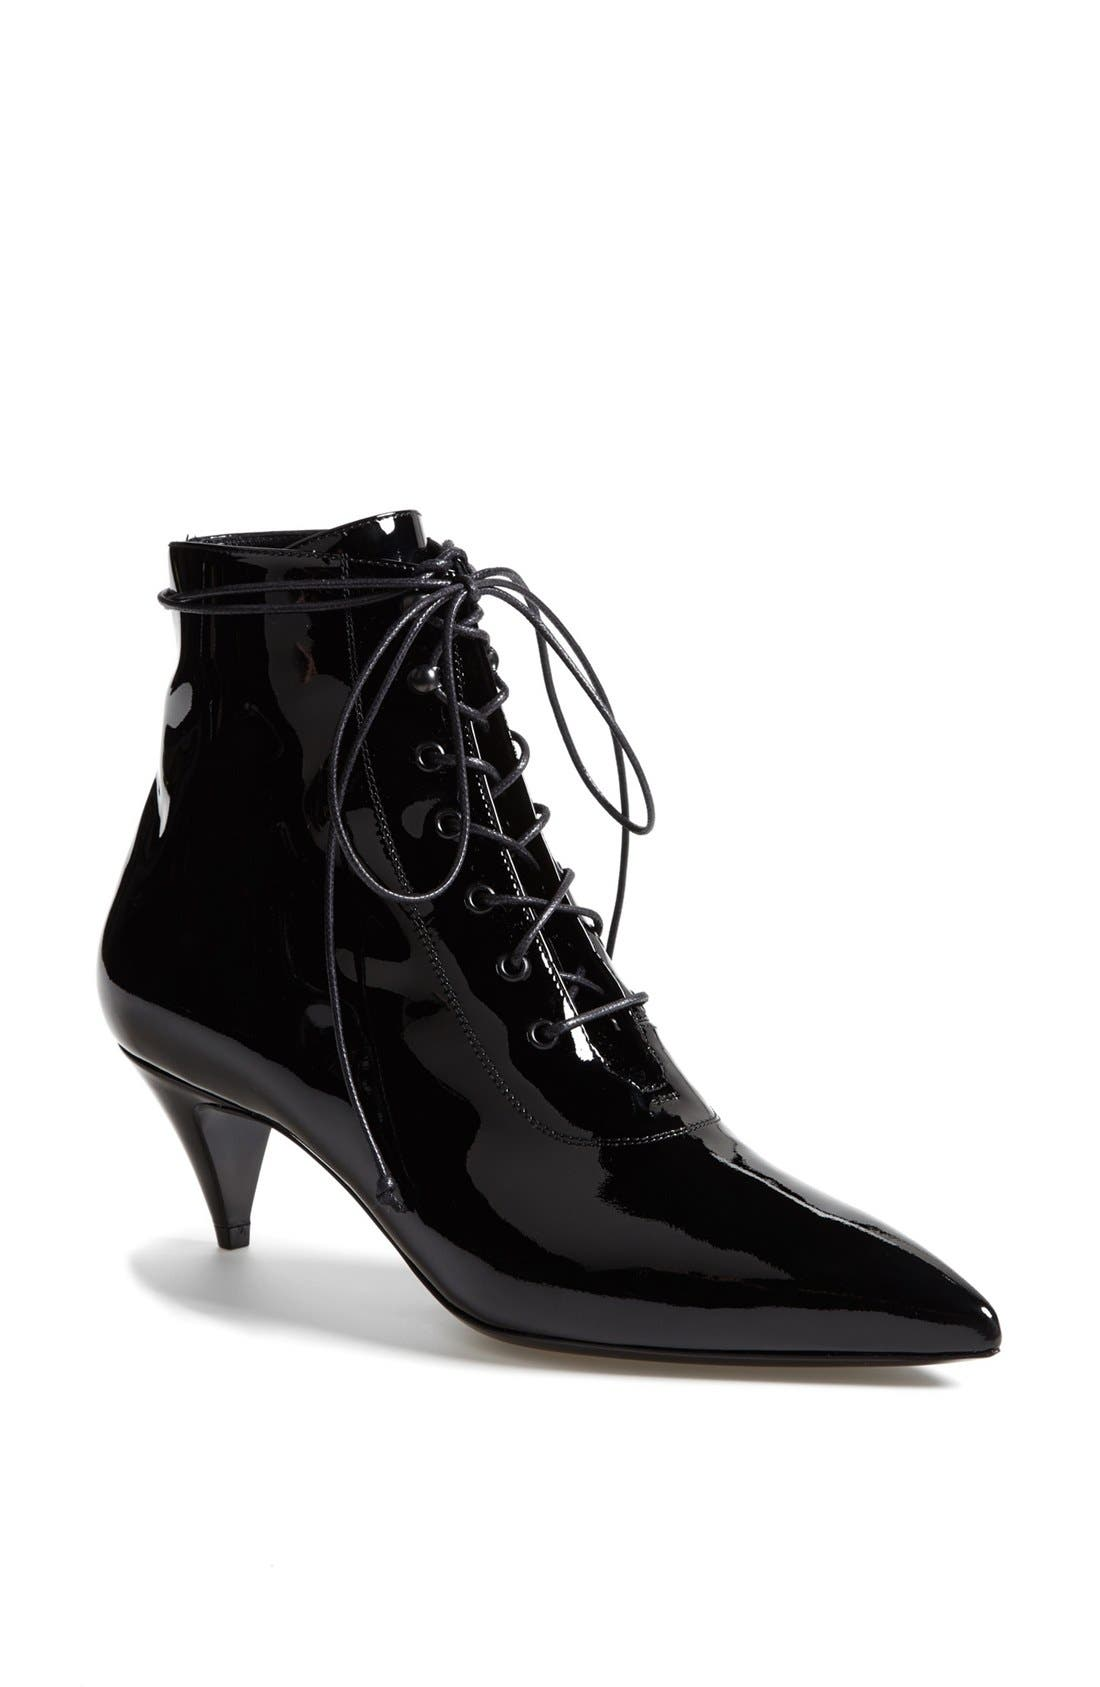 Alternate Image 1 Selected - Saint Laurent 'Cat' Bootie